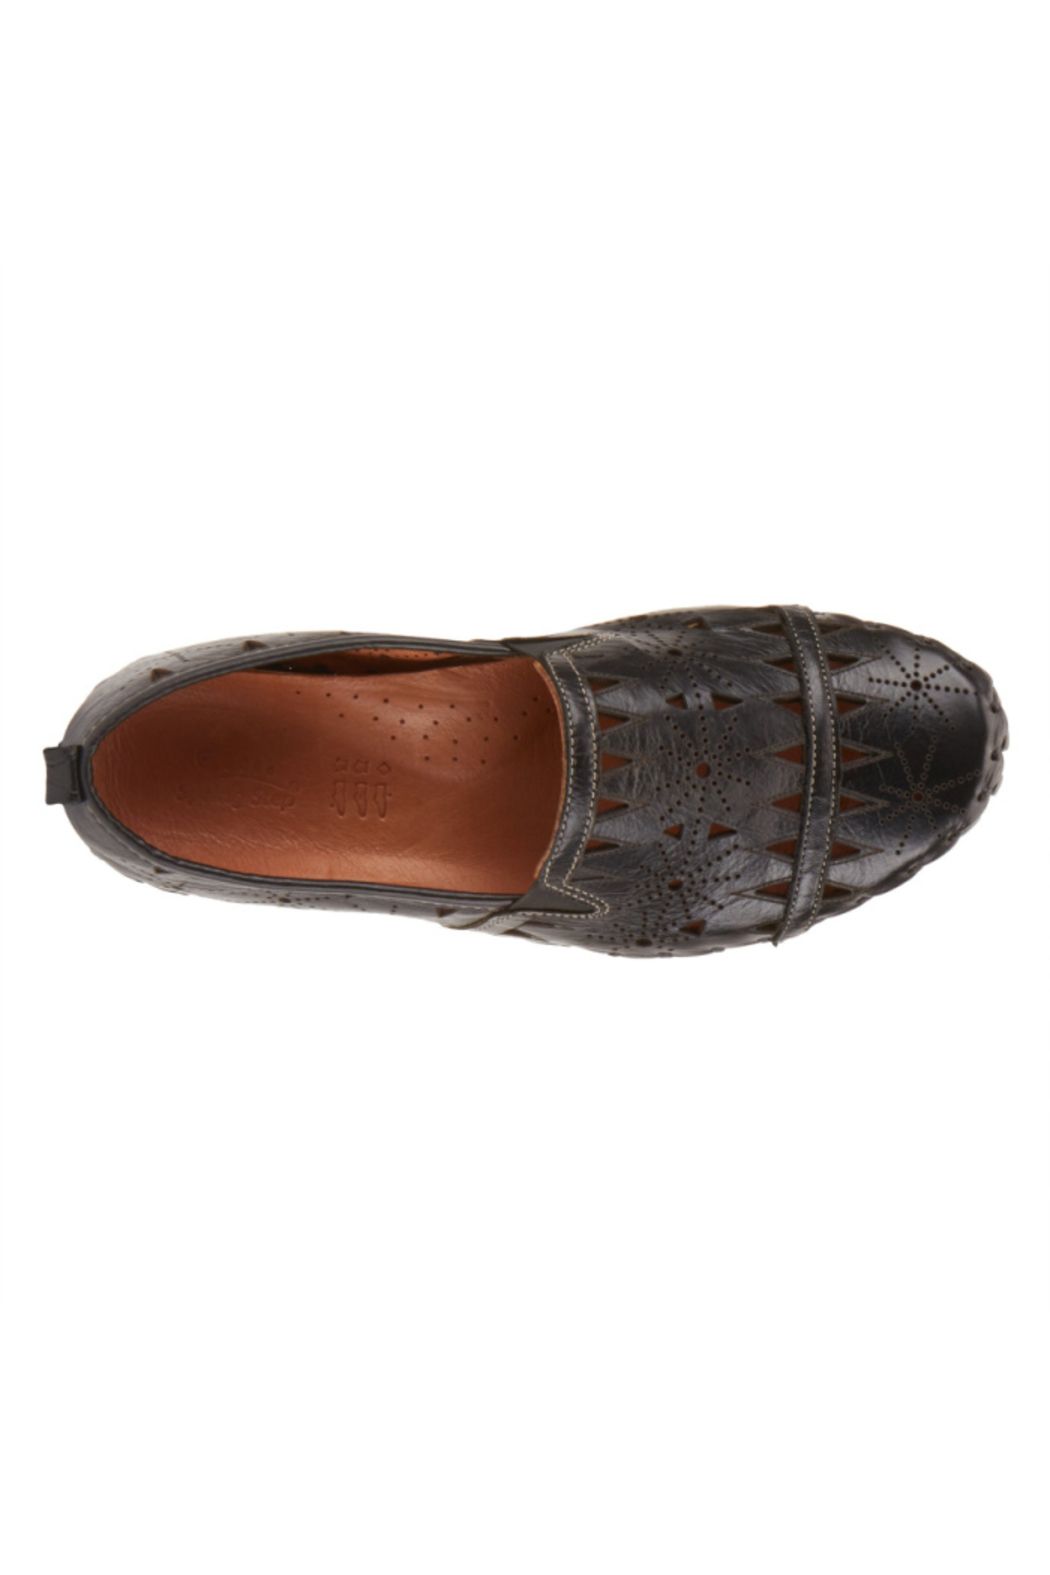 Spring Step  Leather Perforated Slip-On Shoes- Fusaro - Front Full Image